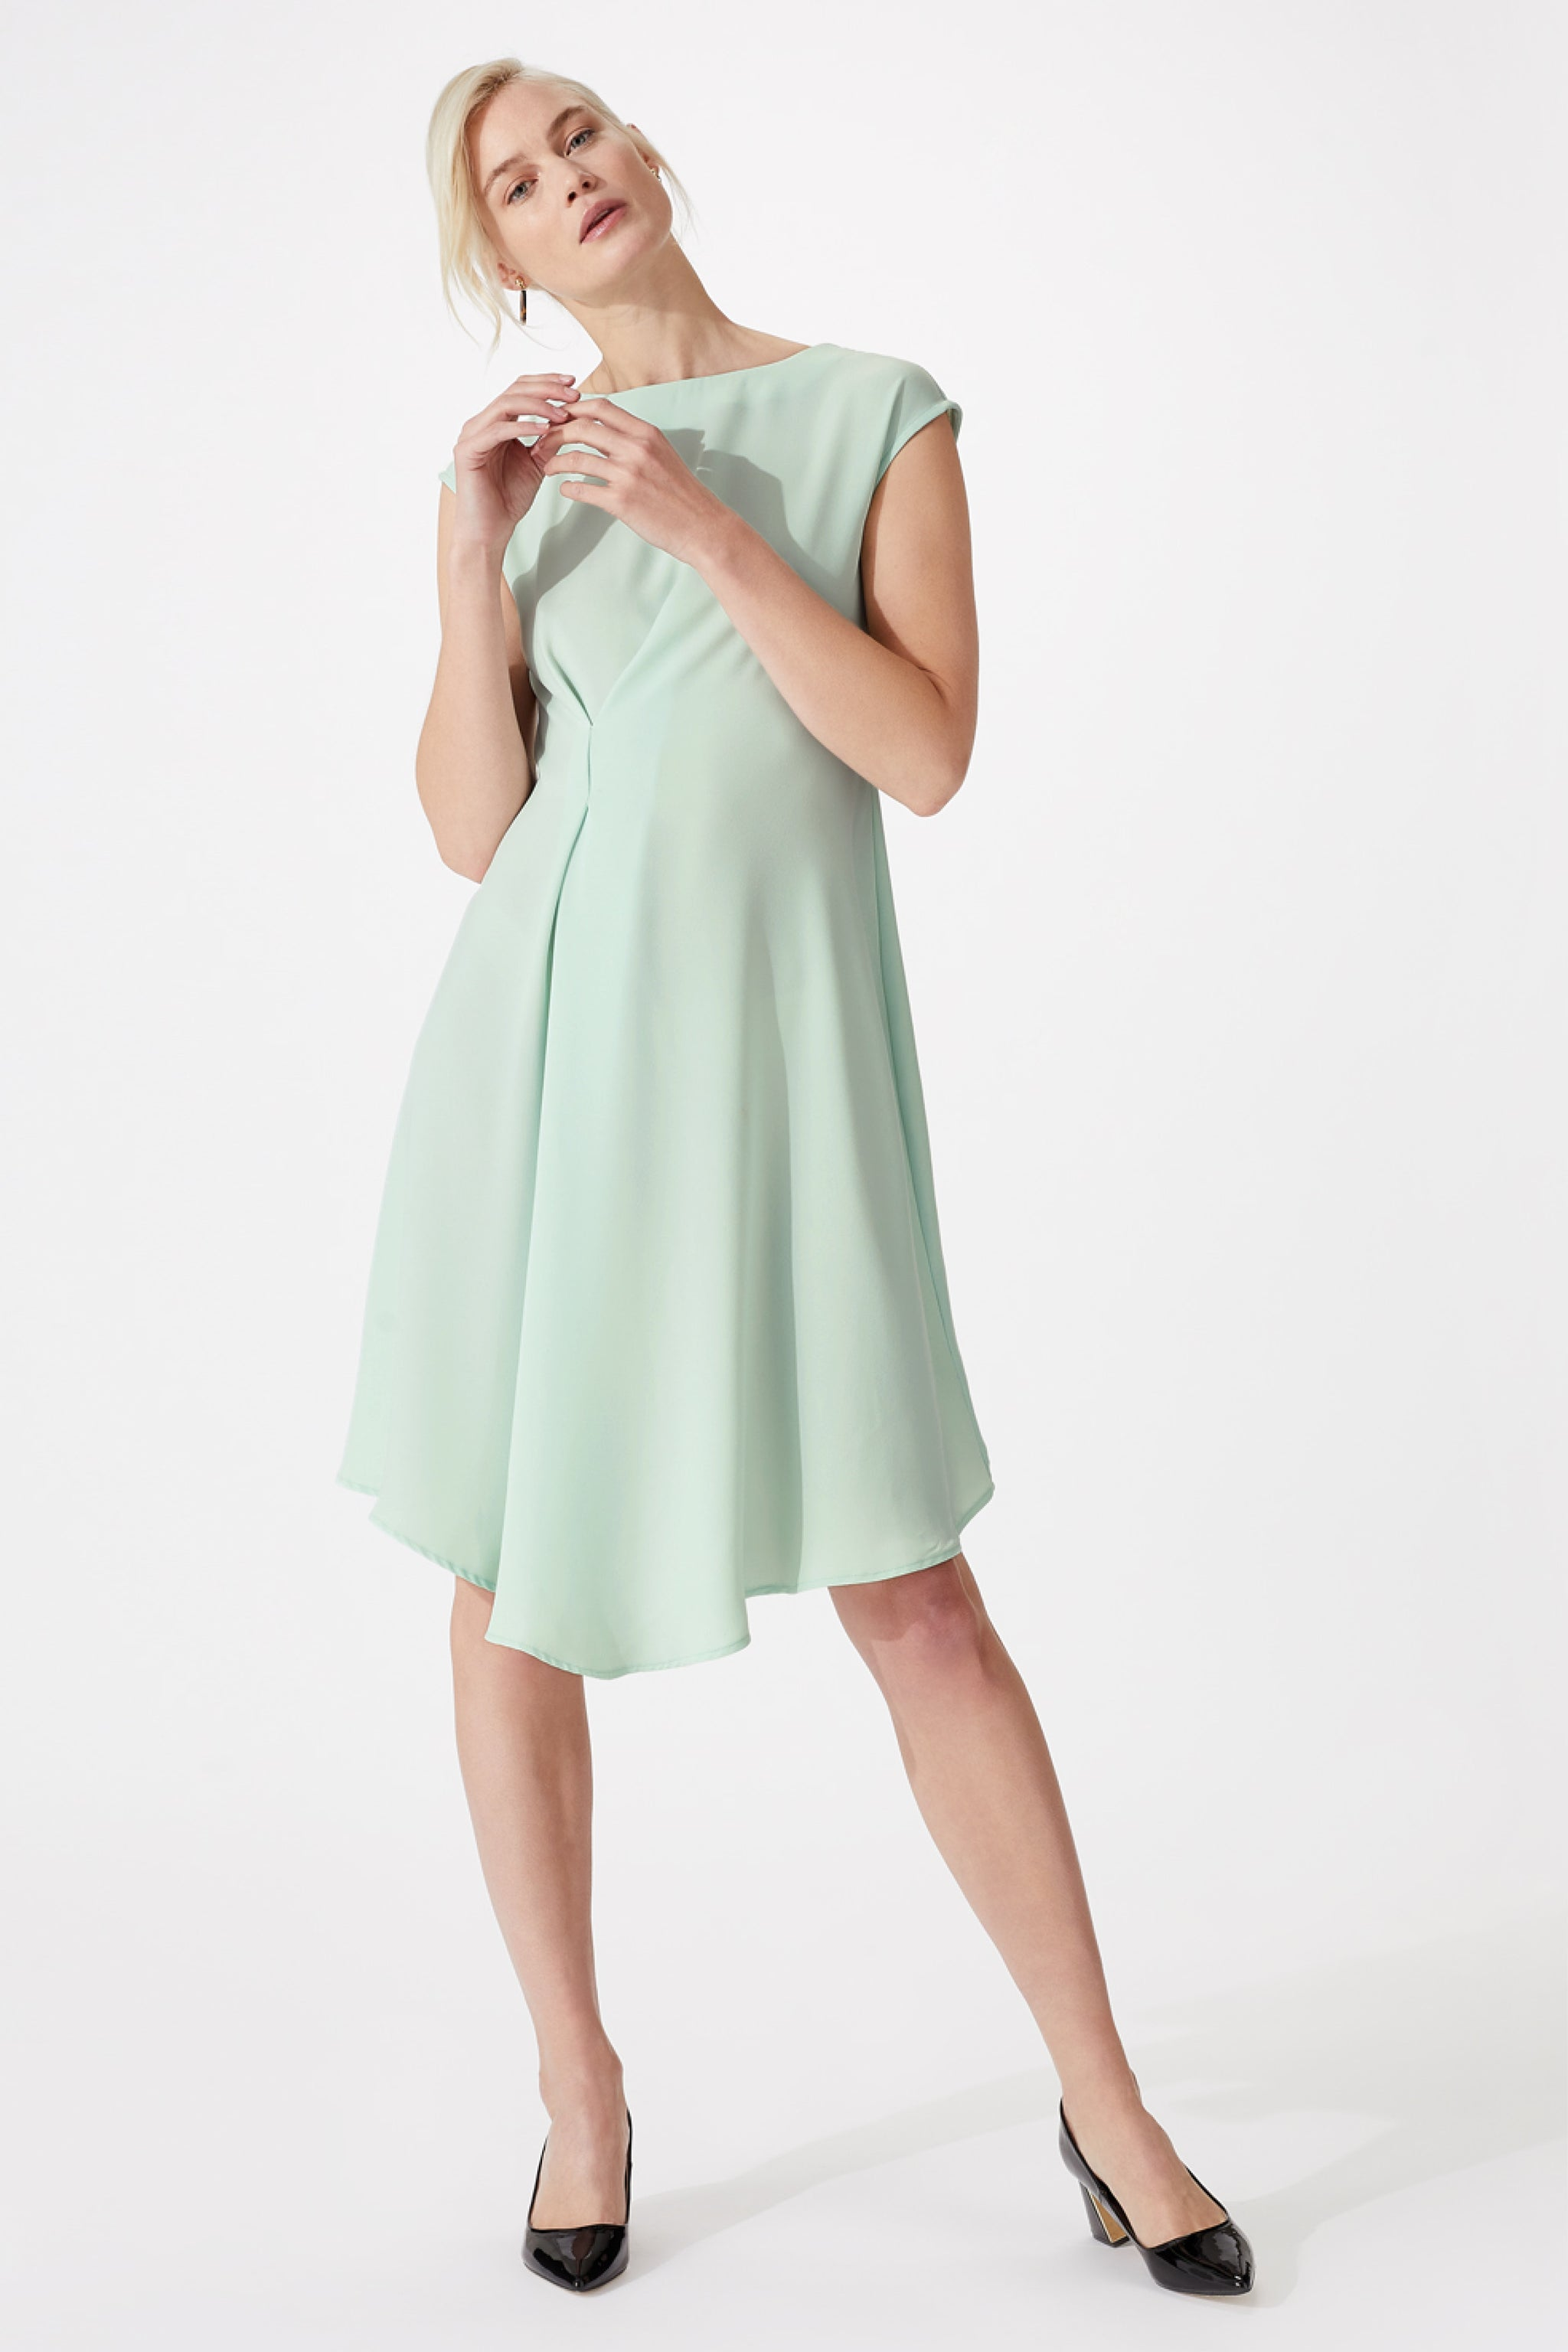 Arlington Pistachio Dress